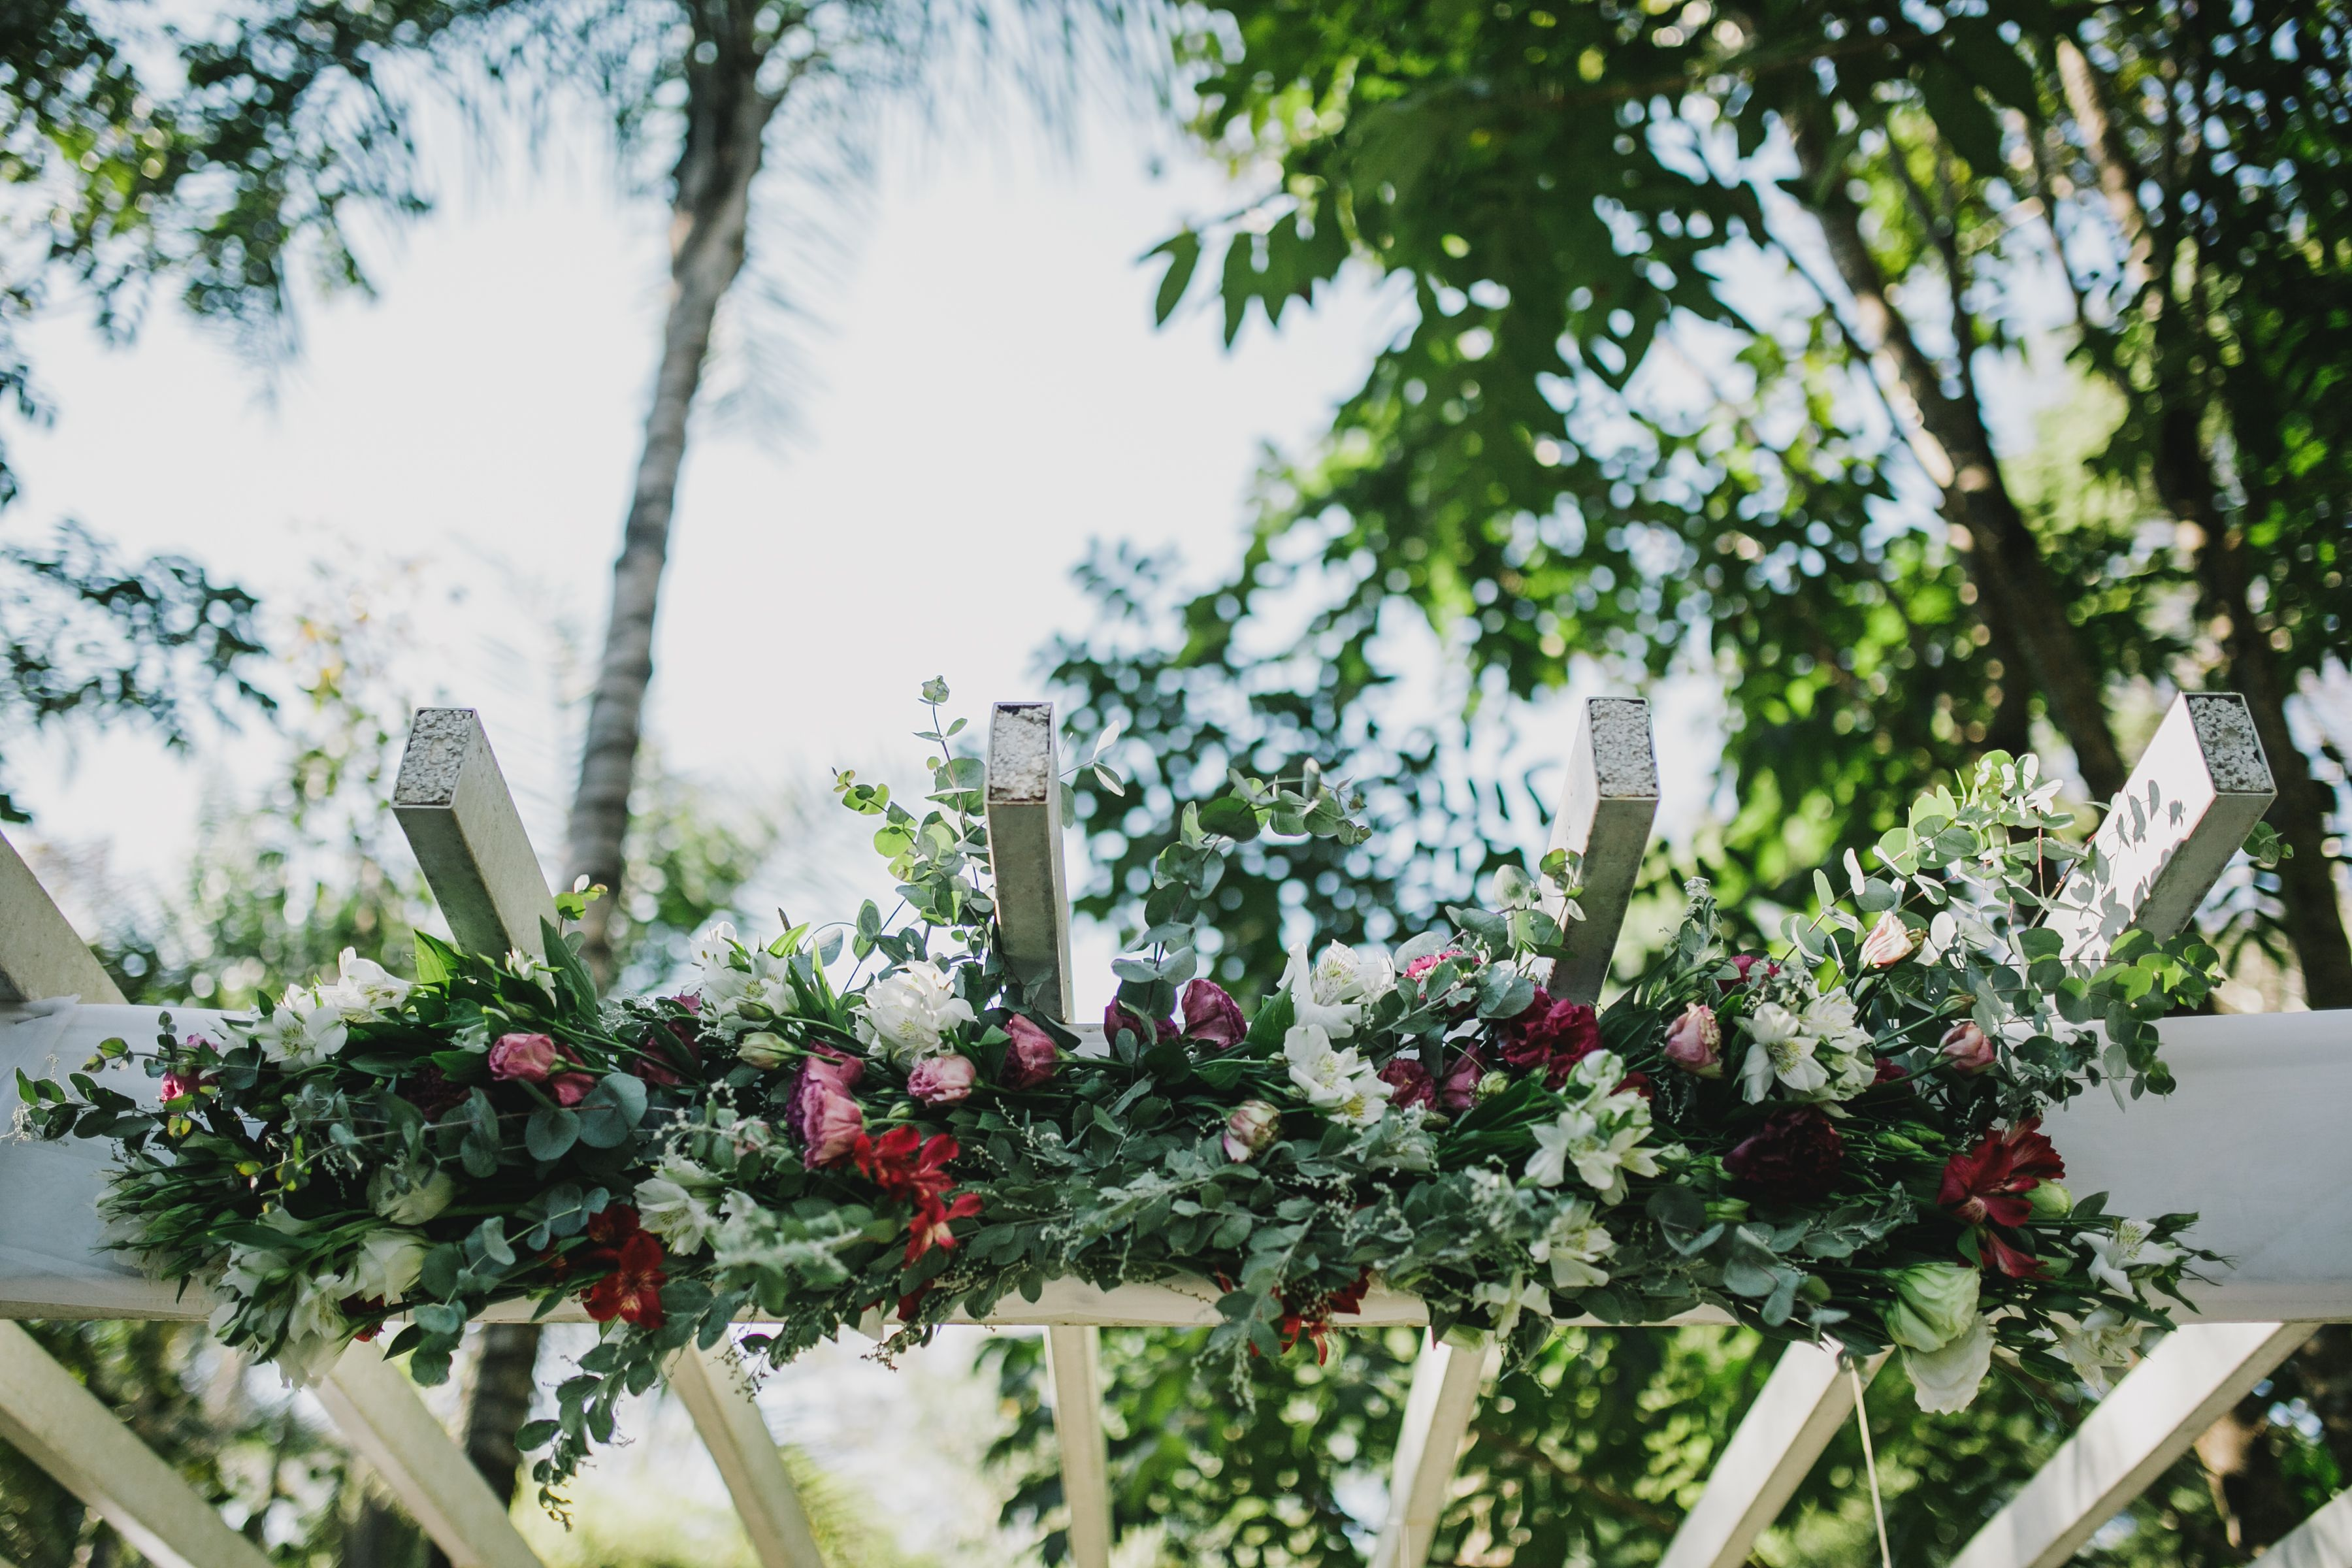 Arranjo lindo e delicado para o gazebo da cerimônia.  Fotografia: Diogo Perez Decoração: Casório DF Local: Green Park (Brasília)  #wedding #casamento #weddingdecoration #creativewedding